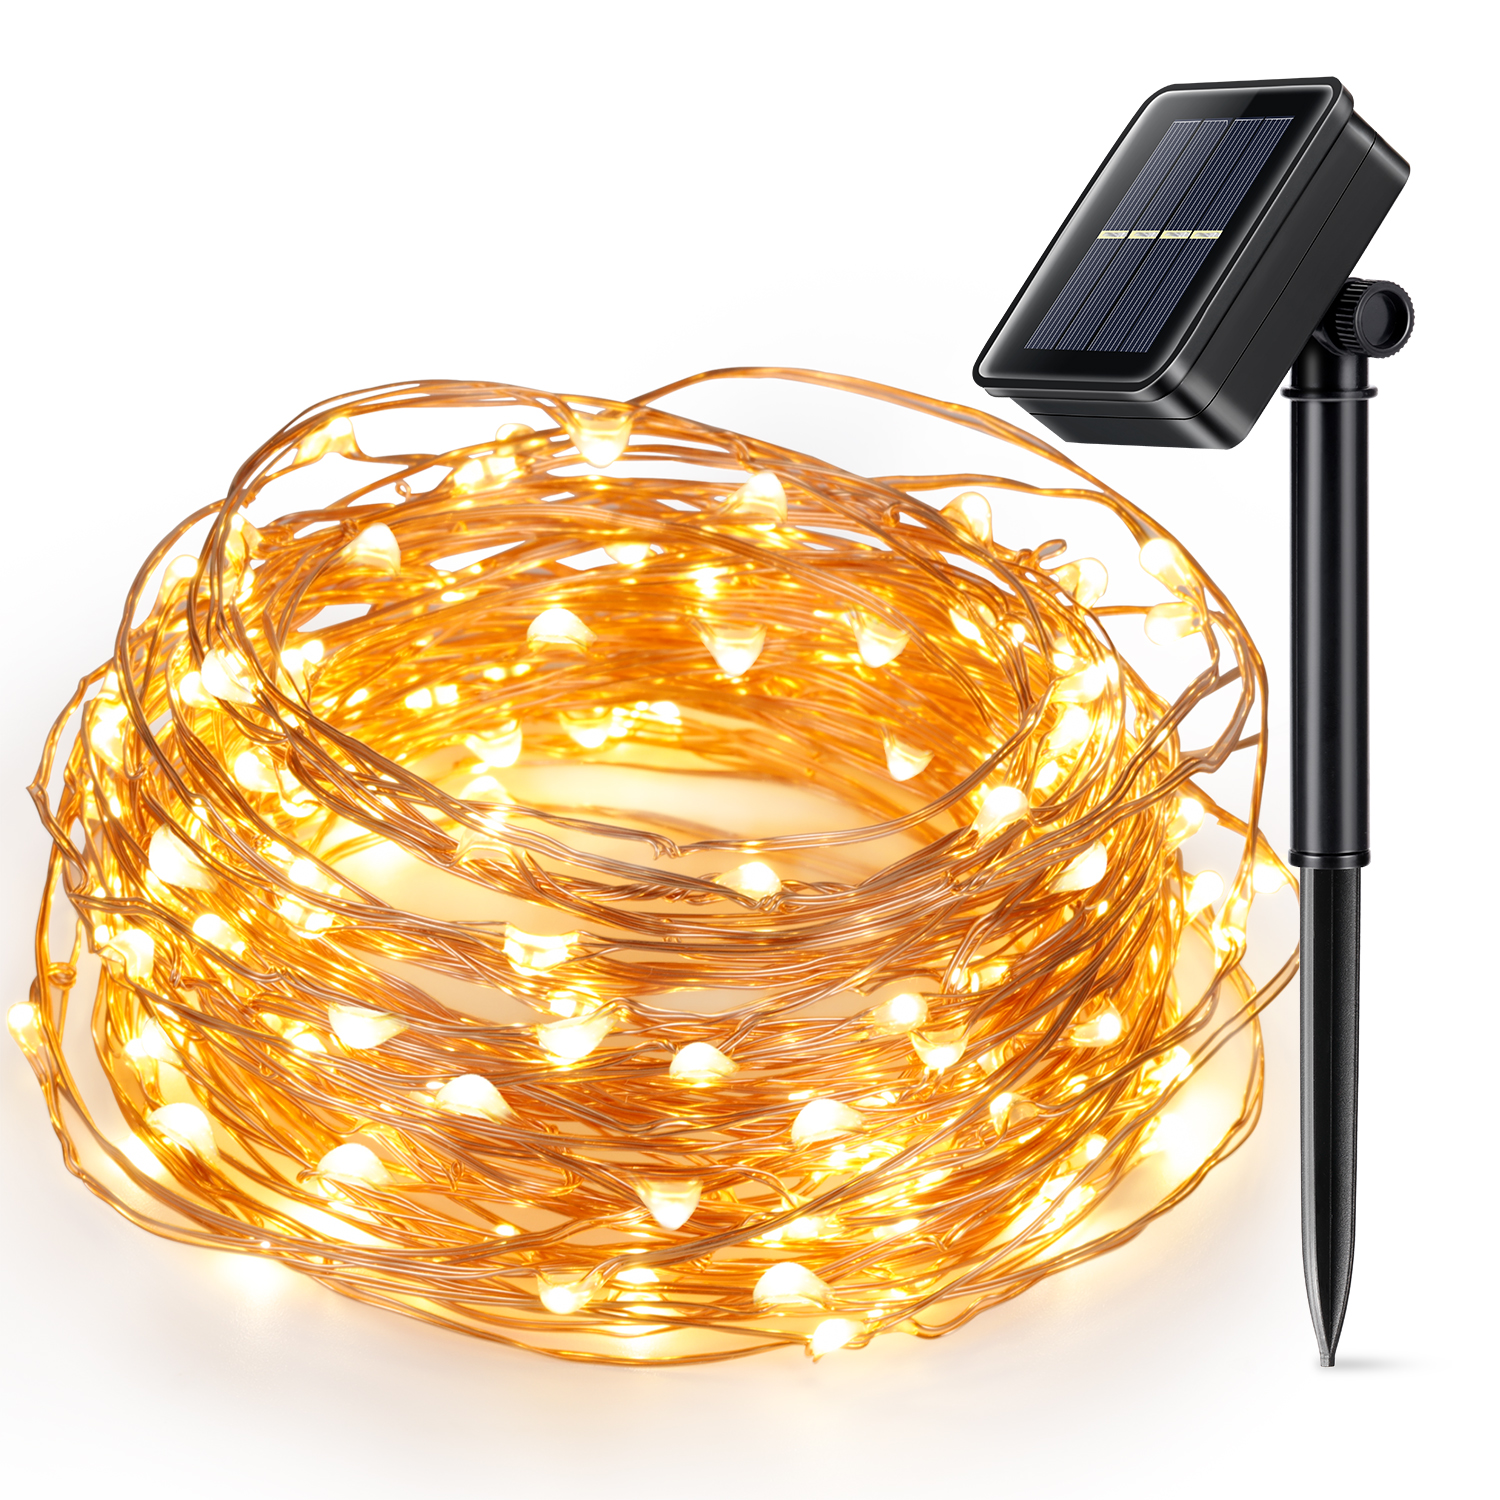 Solar Powered Christmas String Light, Kohree 100 Micro LEDs Light String With 33ft Long Ultra Thin String Copper Wire